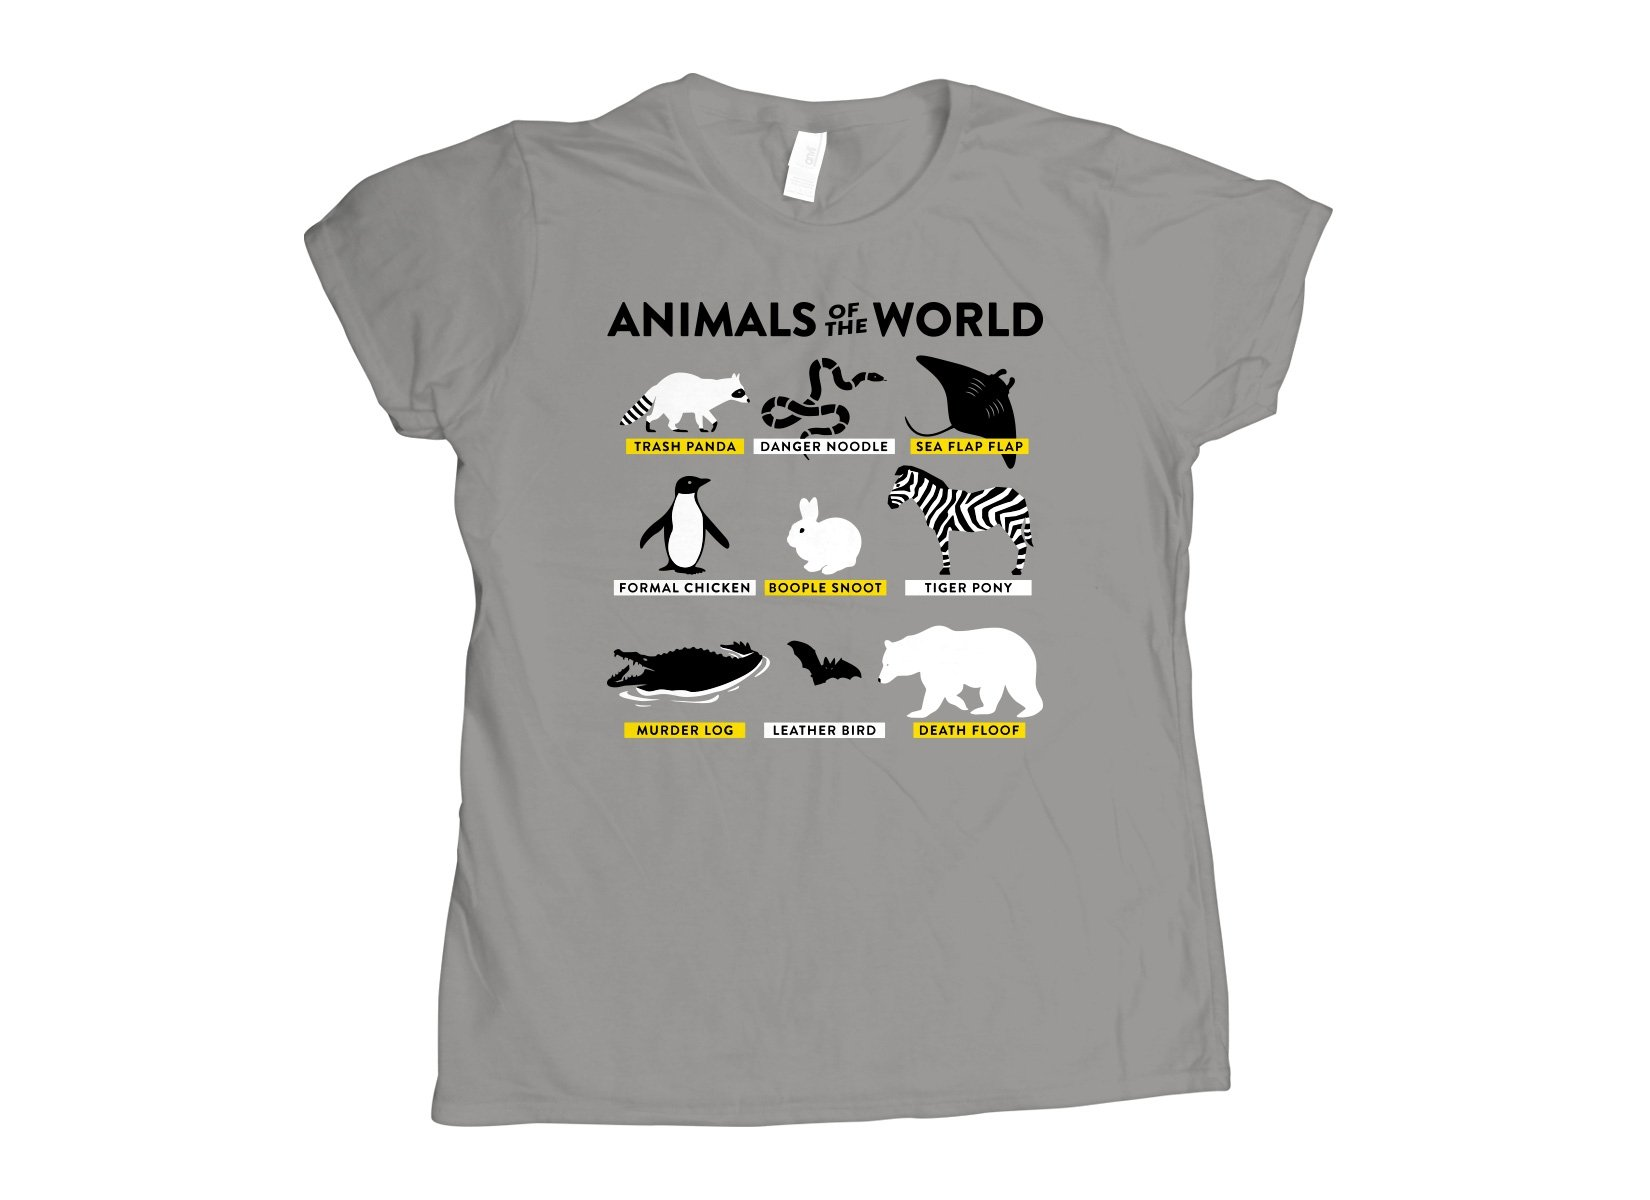 Animals Of The World on Womens T-Shirt